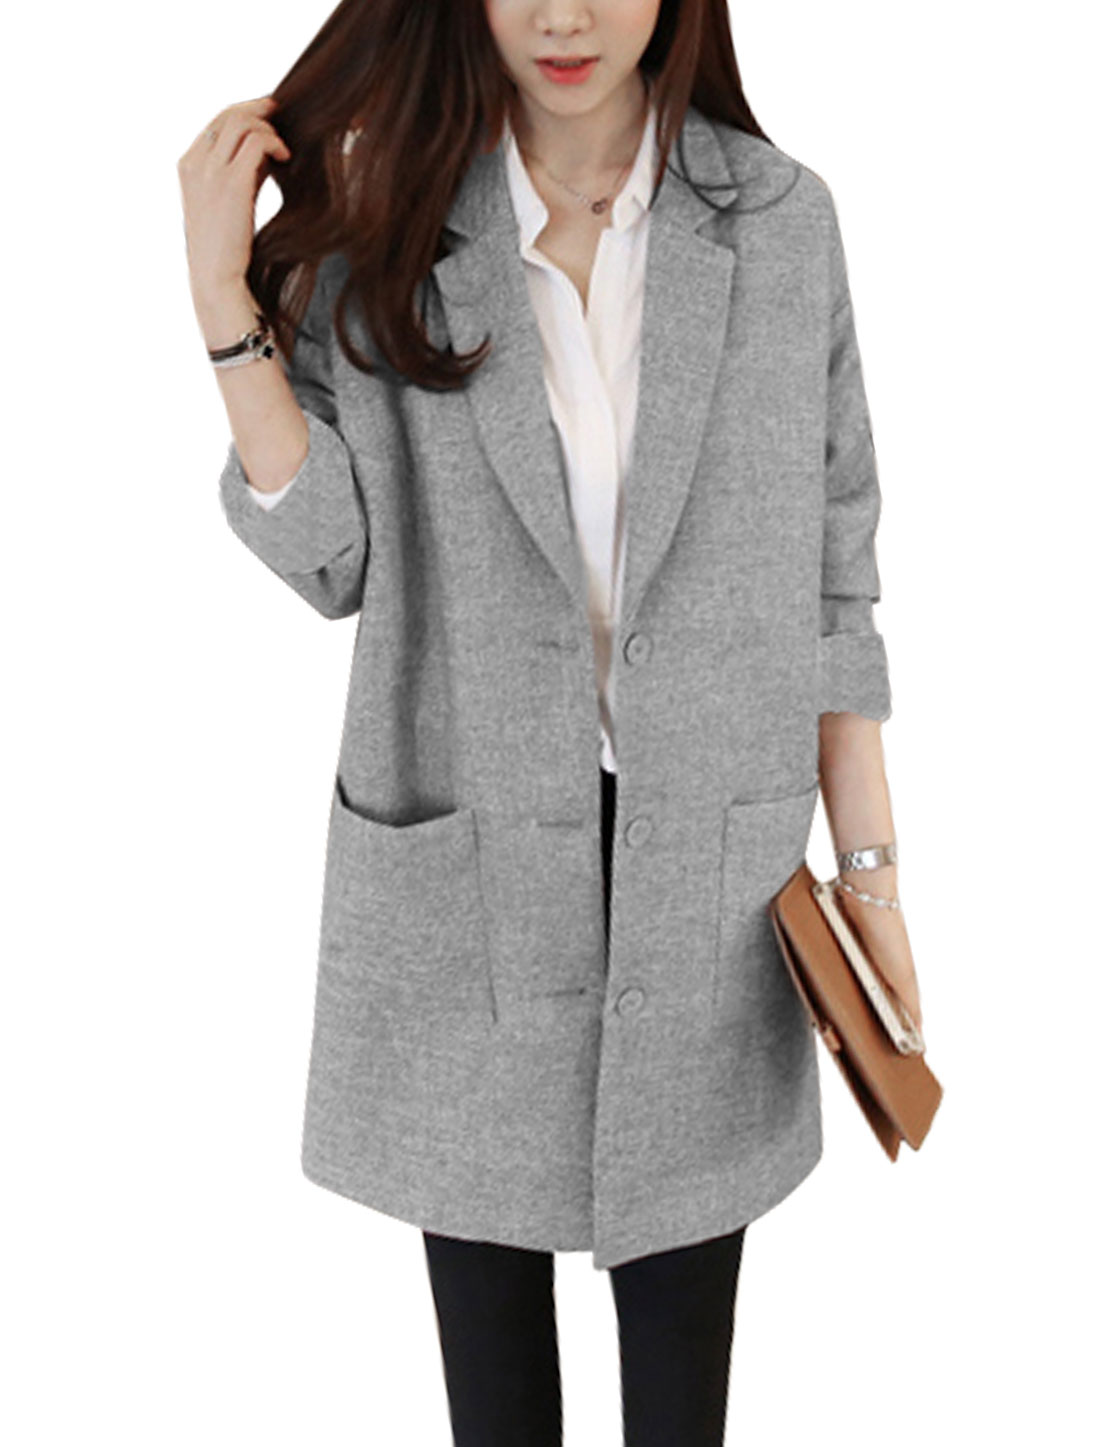 Lady Long Sleeve Notched Lapel Trench Blazer Jacket Light Gary S